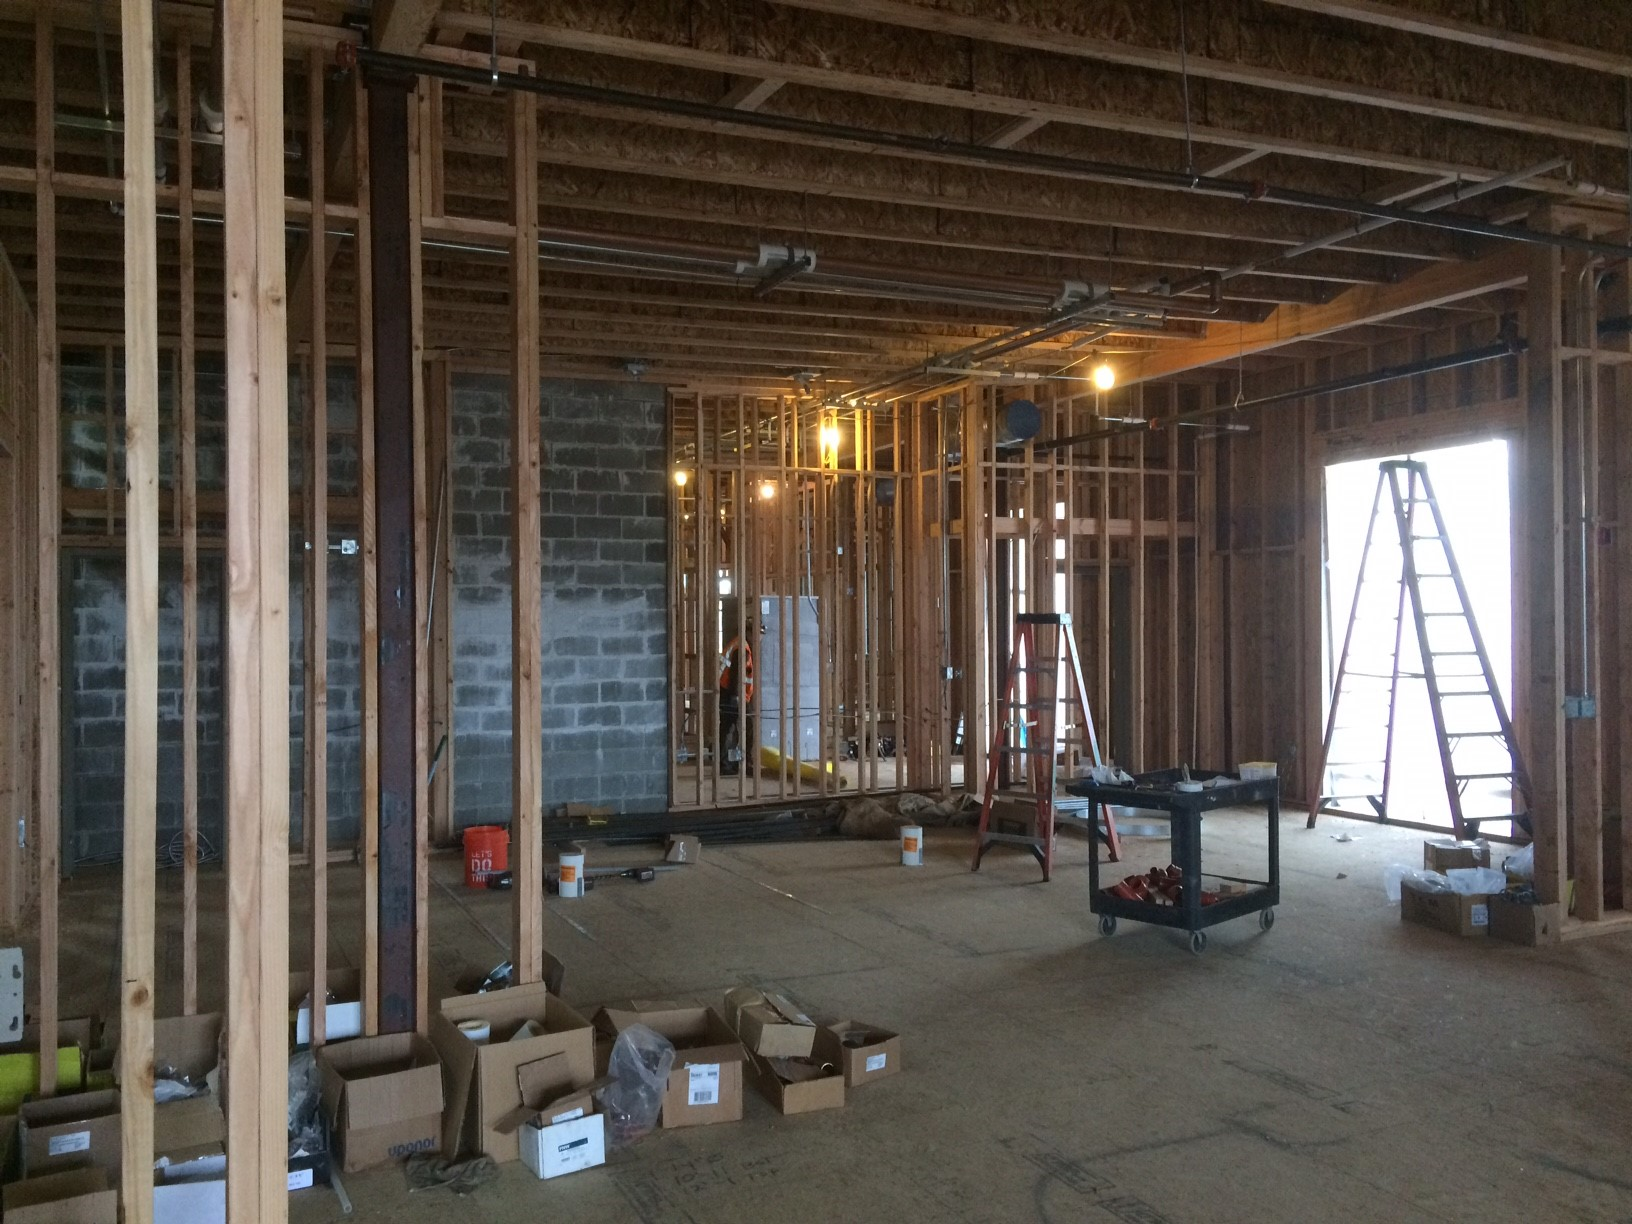 A new $10 million fire station is going up downtown, paid for by a voter-approved bond measure.  While it's just nuts and bolts and planks and screws for now, in four months this will be the new Station 11 and administrative headquarters for the Albany Fire Department. (SBG)